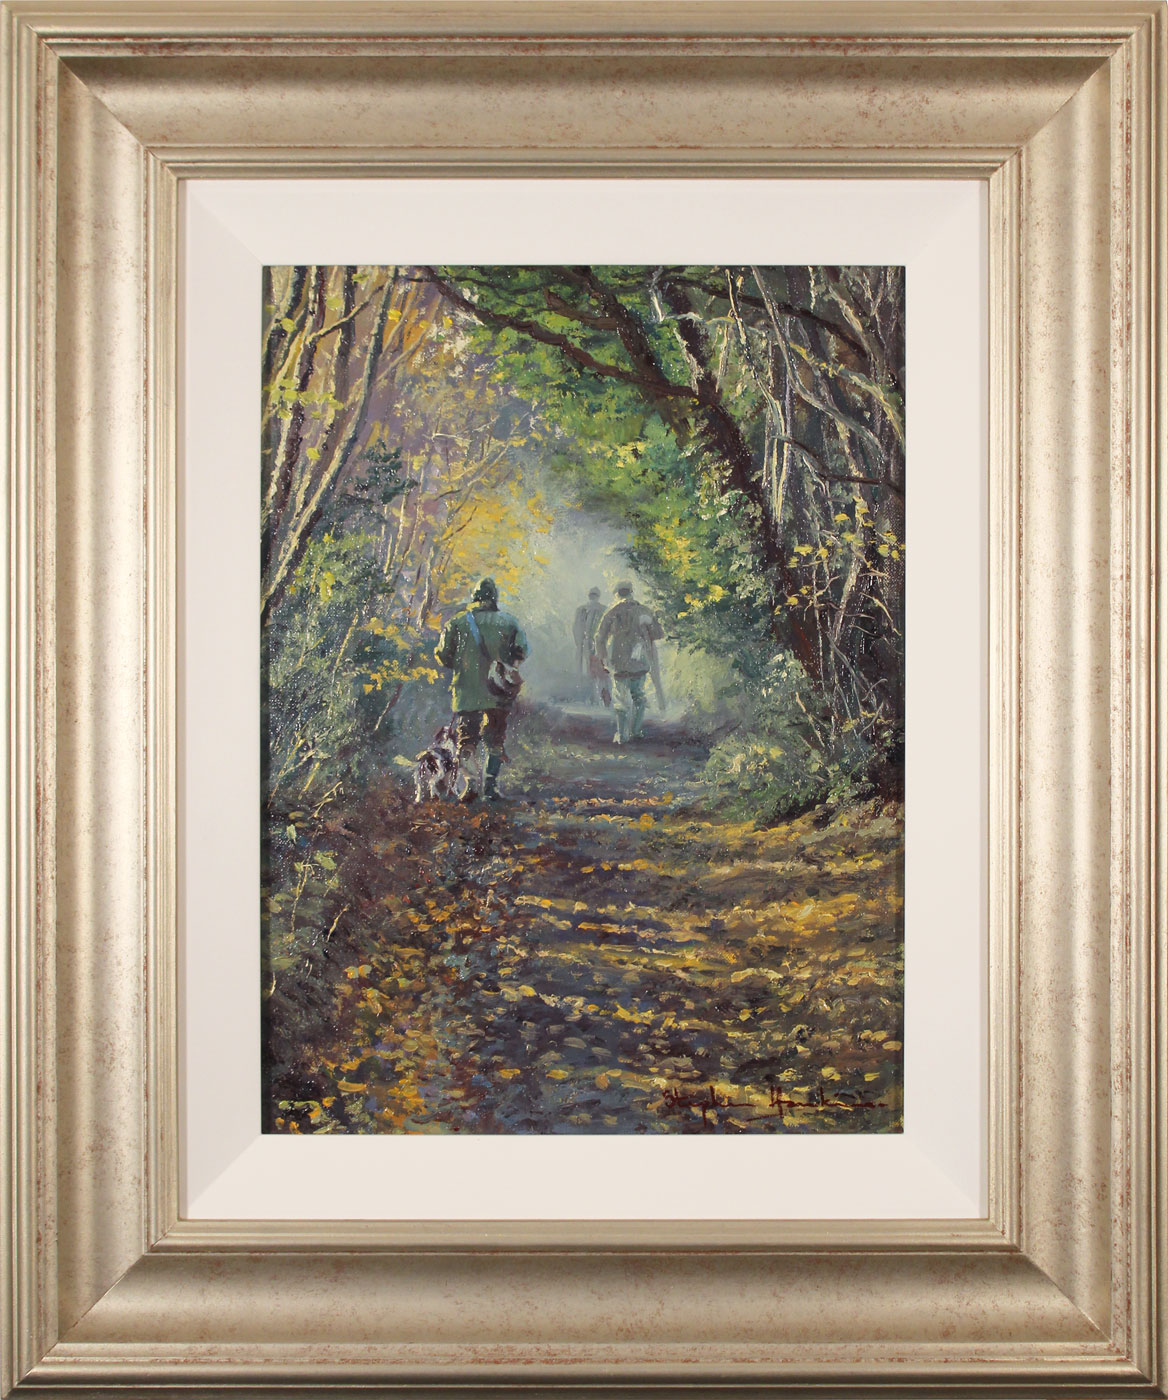 Stephen Hawkins, Original oil painting on canvas, Woodland Way. Click to enlarge